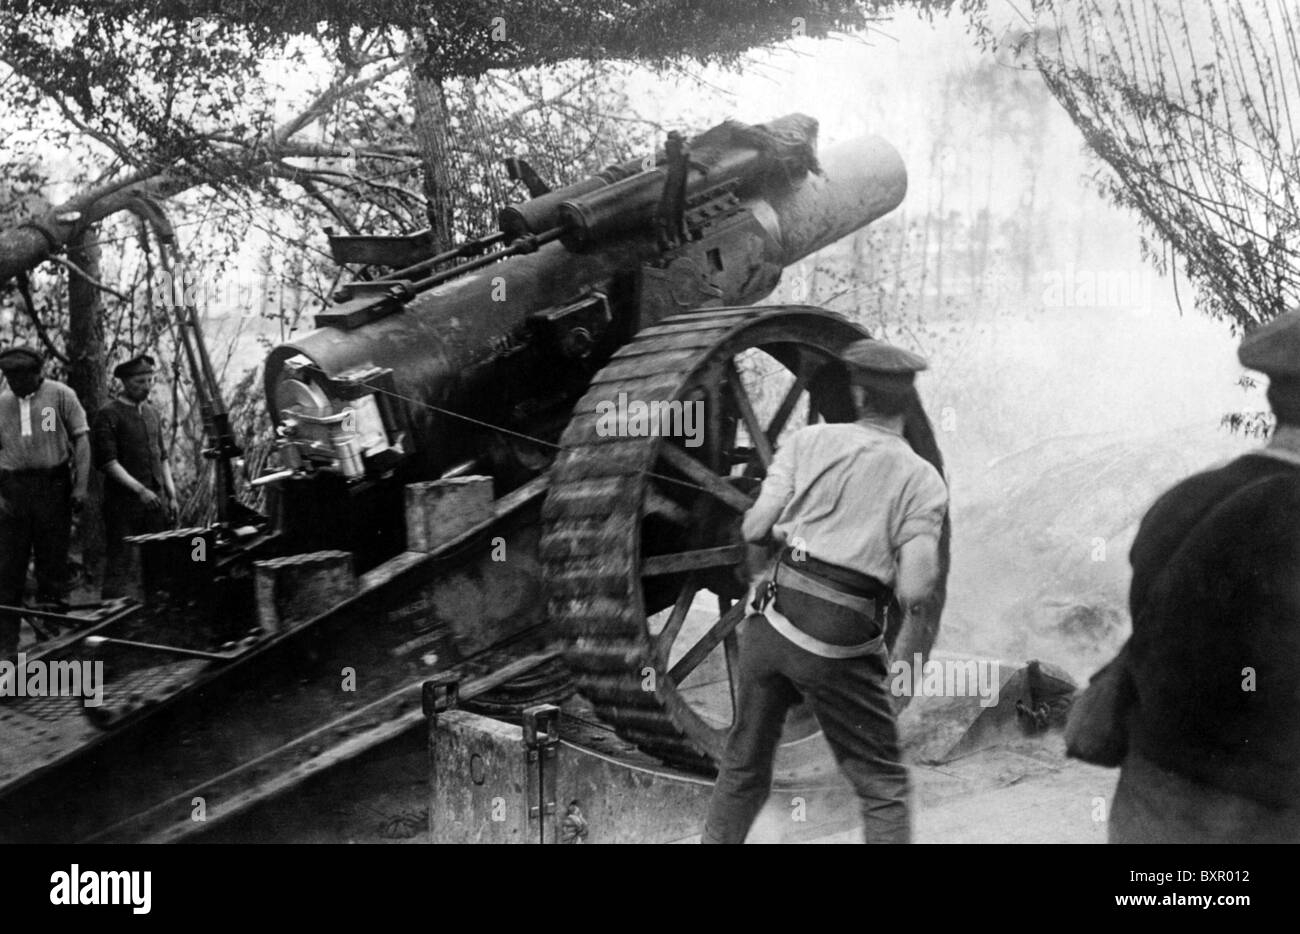 1917  BRITISH ARTILLERY  Soldier at right has pulled the lanyard to fire this 8 inch howitzer. See Description below - Stock Image